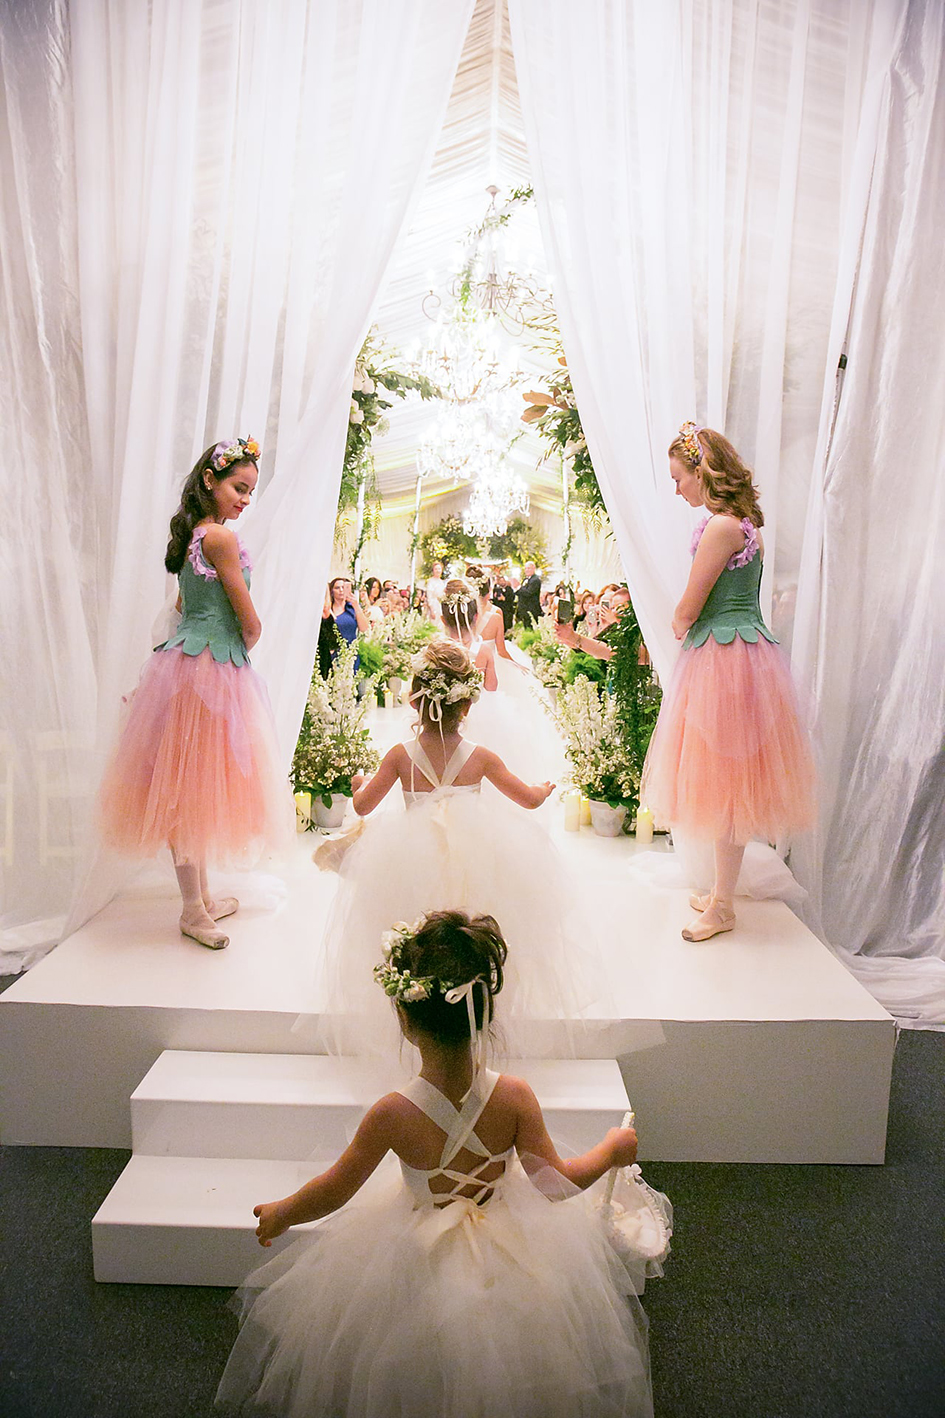 The flower girls walk down the aisle at Michael and Neda's wedding at Four Seasons Westlake Village